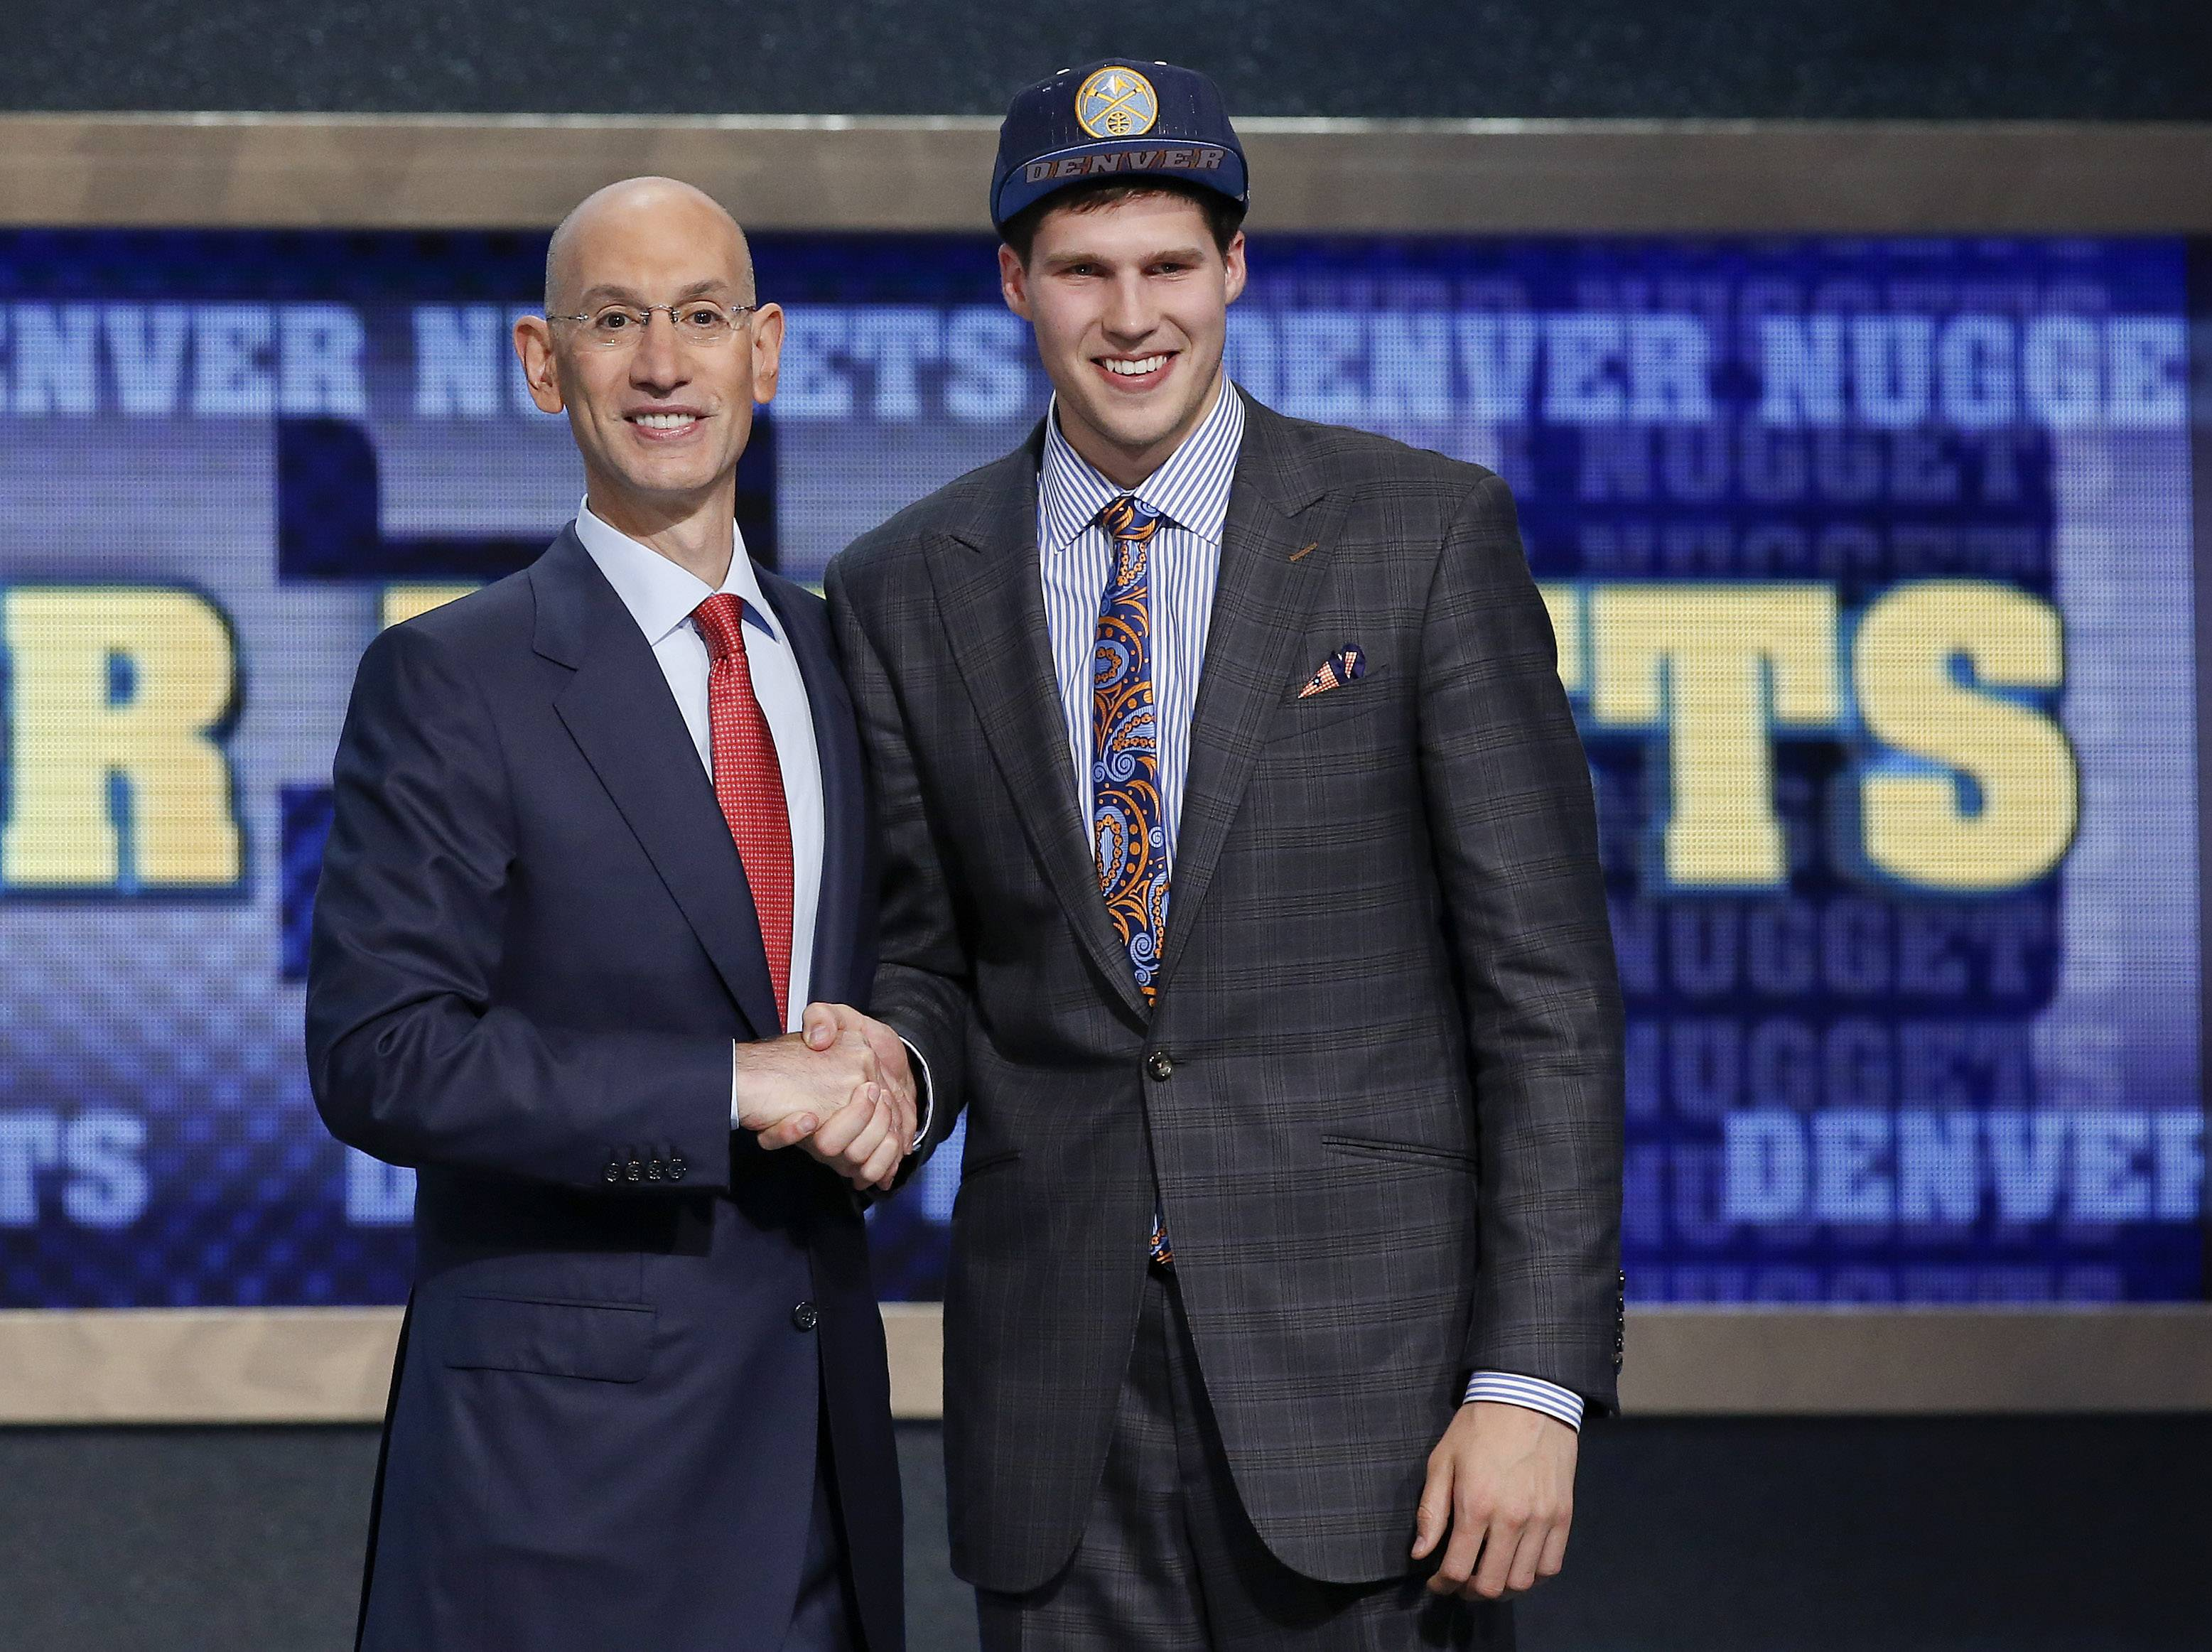 Creighton's Doug McDermott, right, poses for a photo with NBA Commissioner Adam Silver after being selected 11th overall by the Denver Nuggets during the 2014 NBA draft, Thursday, June 26, 2014, in New York.